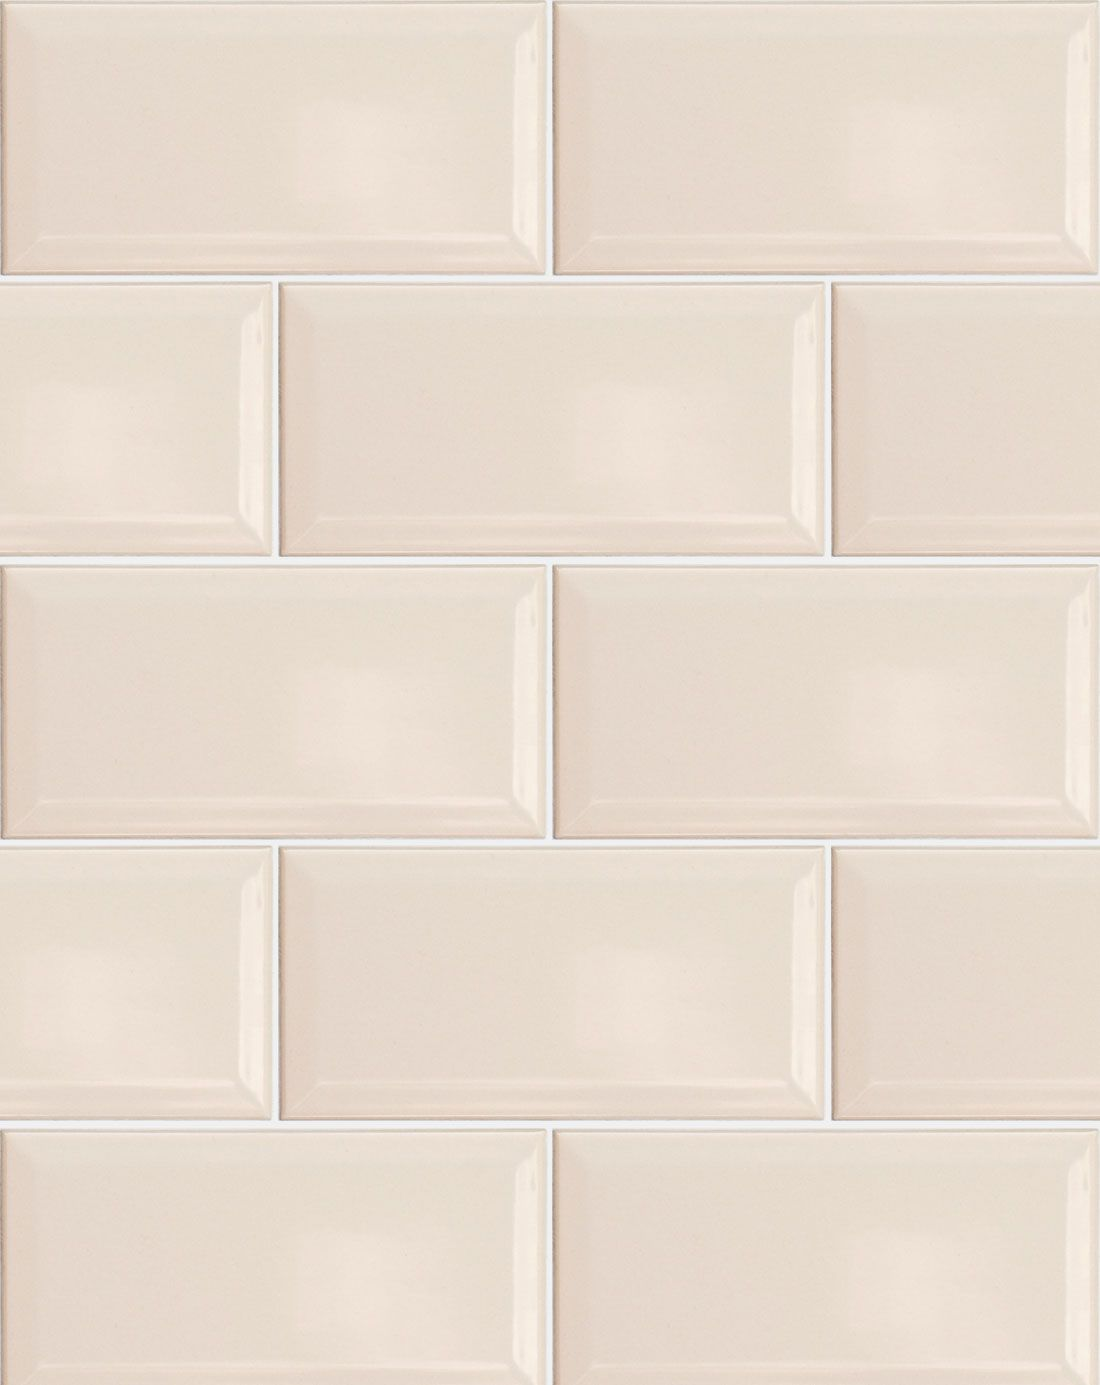 Metro Cream Wall Tile Kitchen Tiles Direct Trendy Kitchen Tile Cream Kitchen Walls Kitchen Wall Tiles